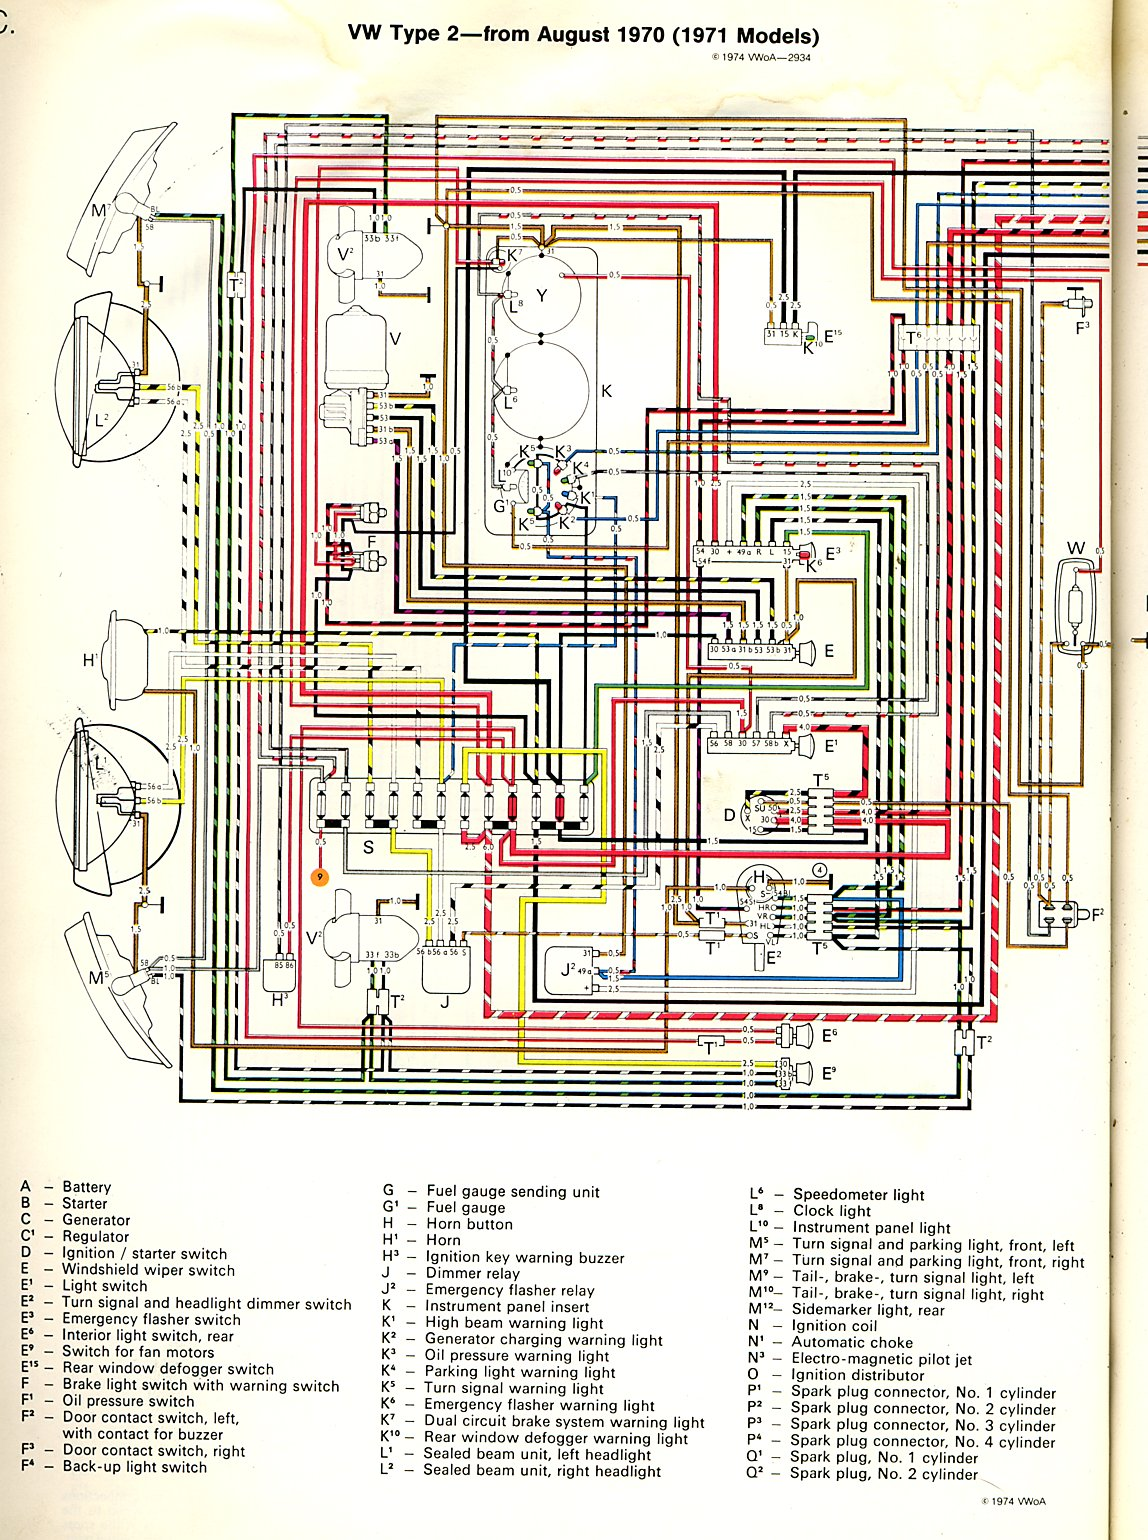 Type 2 Wiring Diagrams Brake Turn Signal Diagram